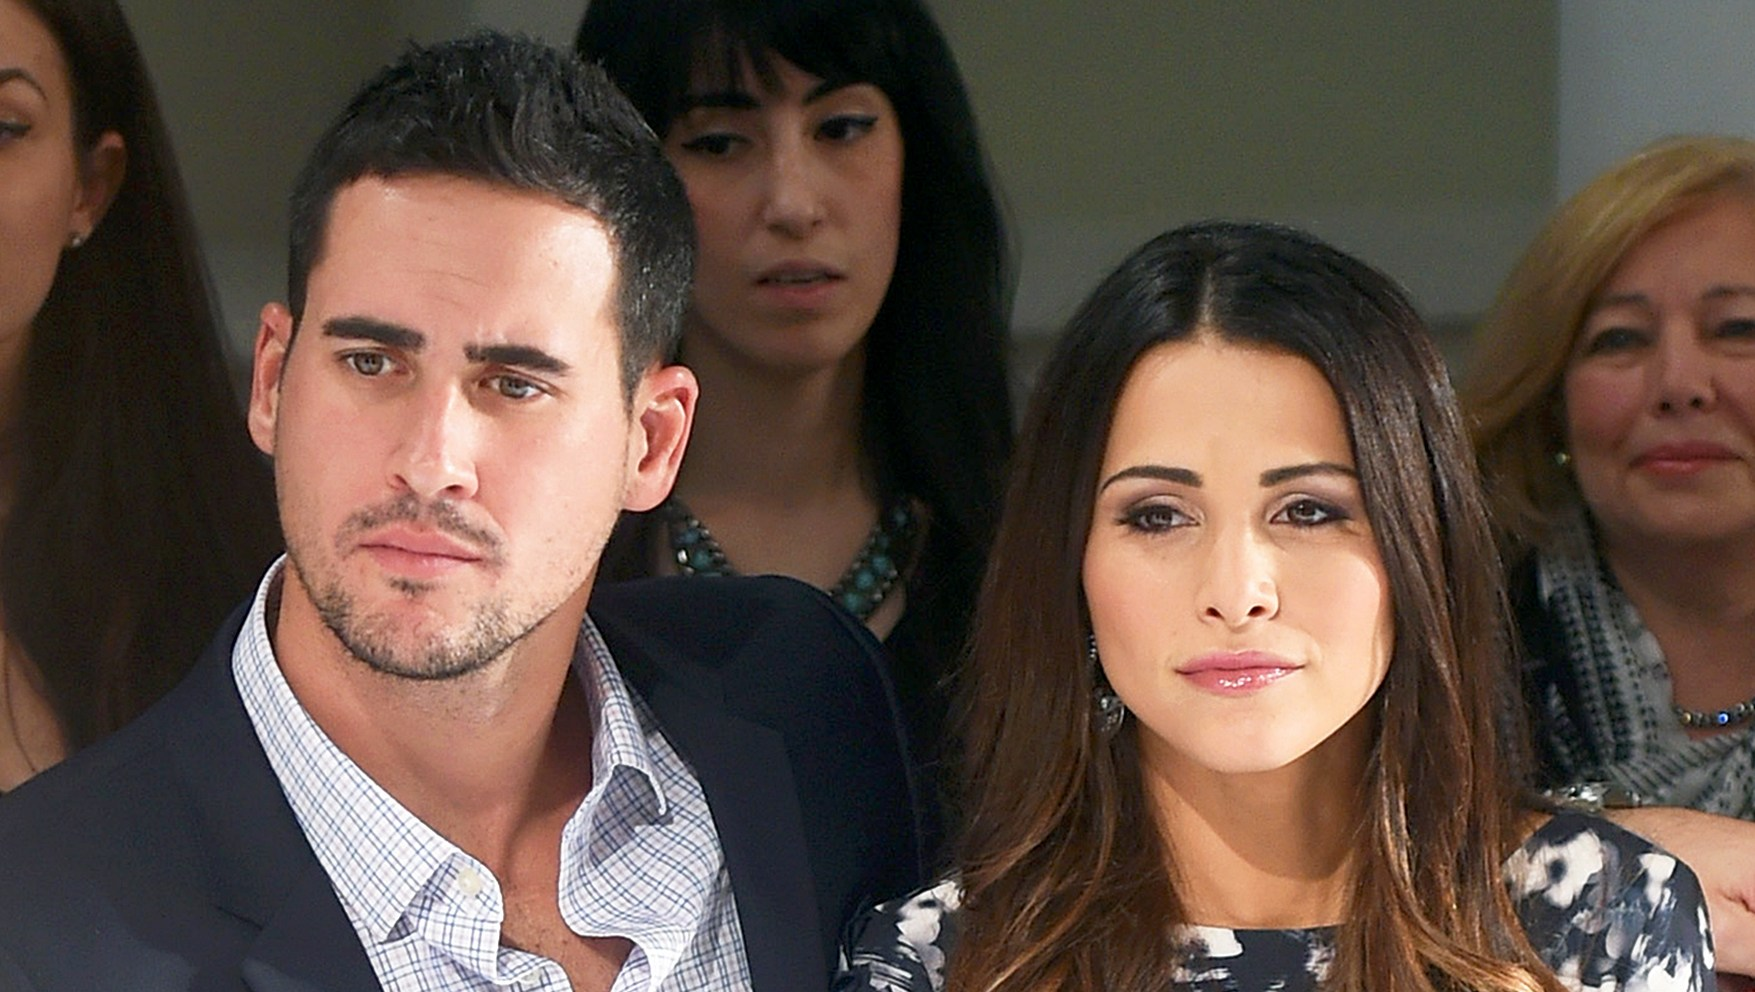 Josh Murray and Andi Dorfman attend front row at The Mark Zunino For Kleinfeld 2015 Runway Show at Kleinfeld in New York City.